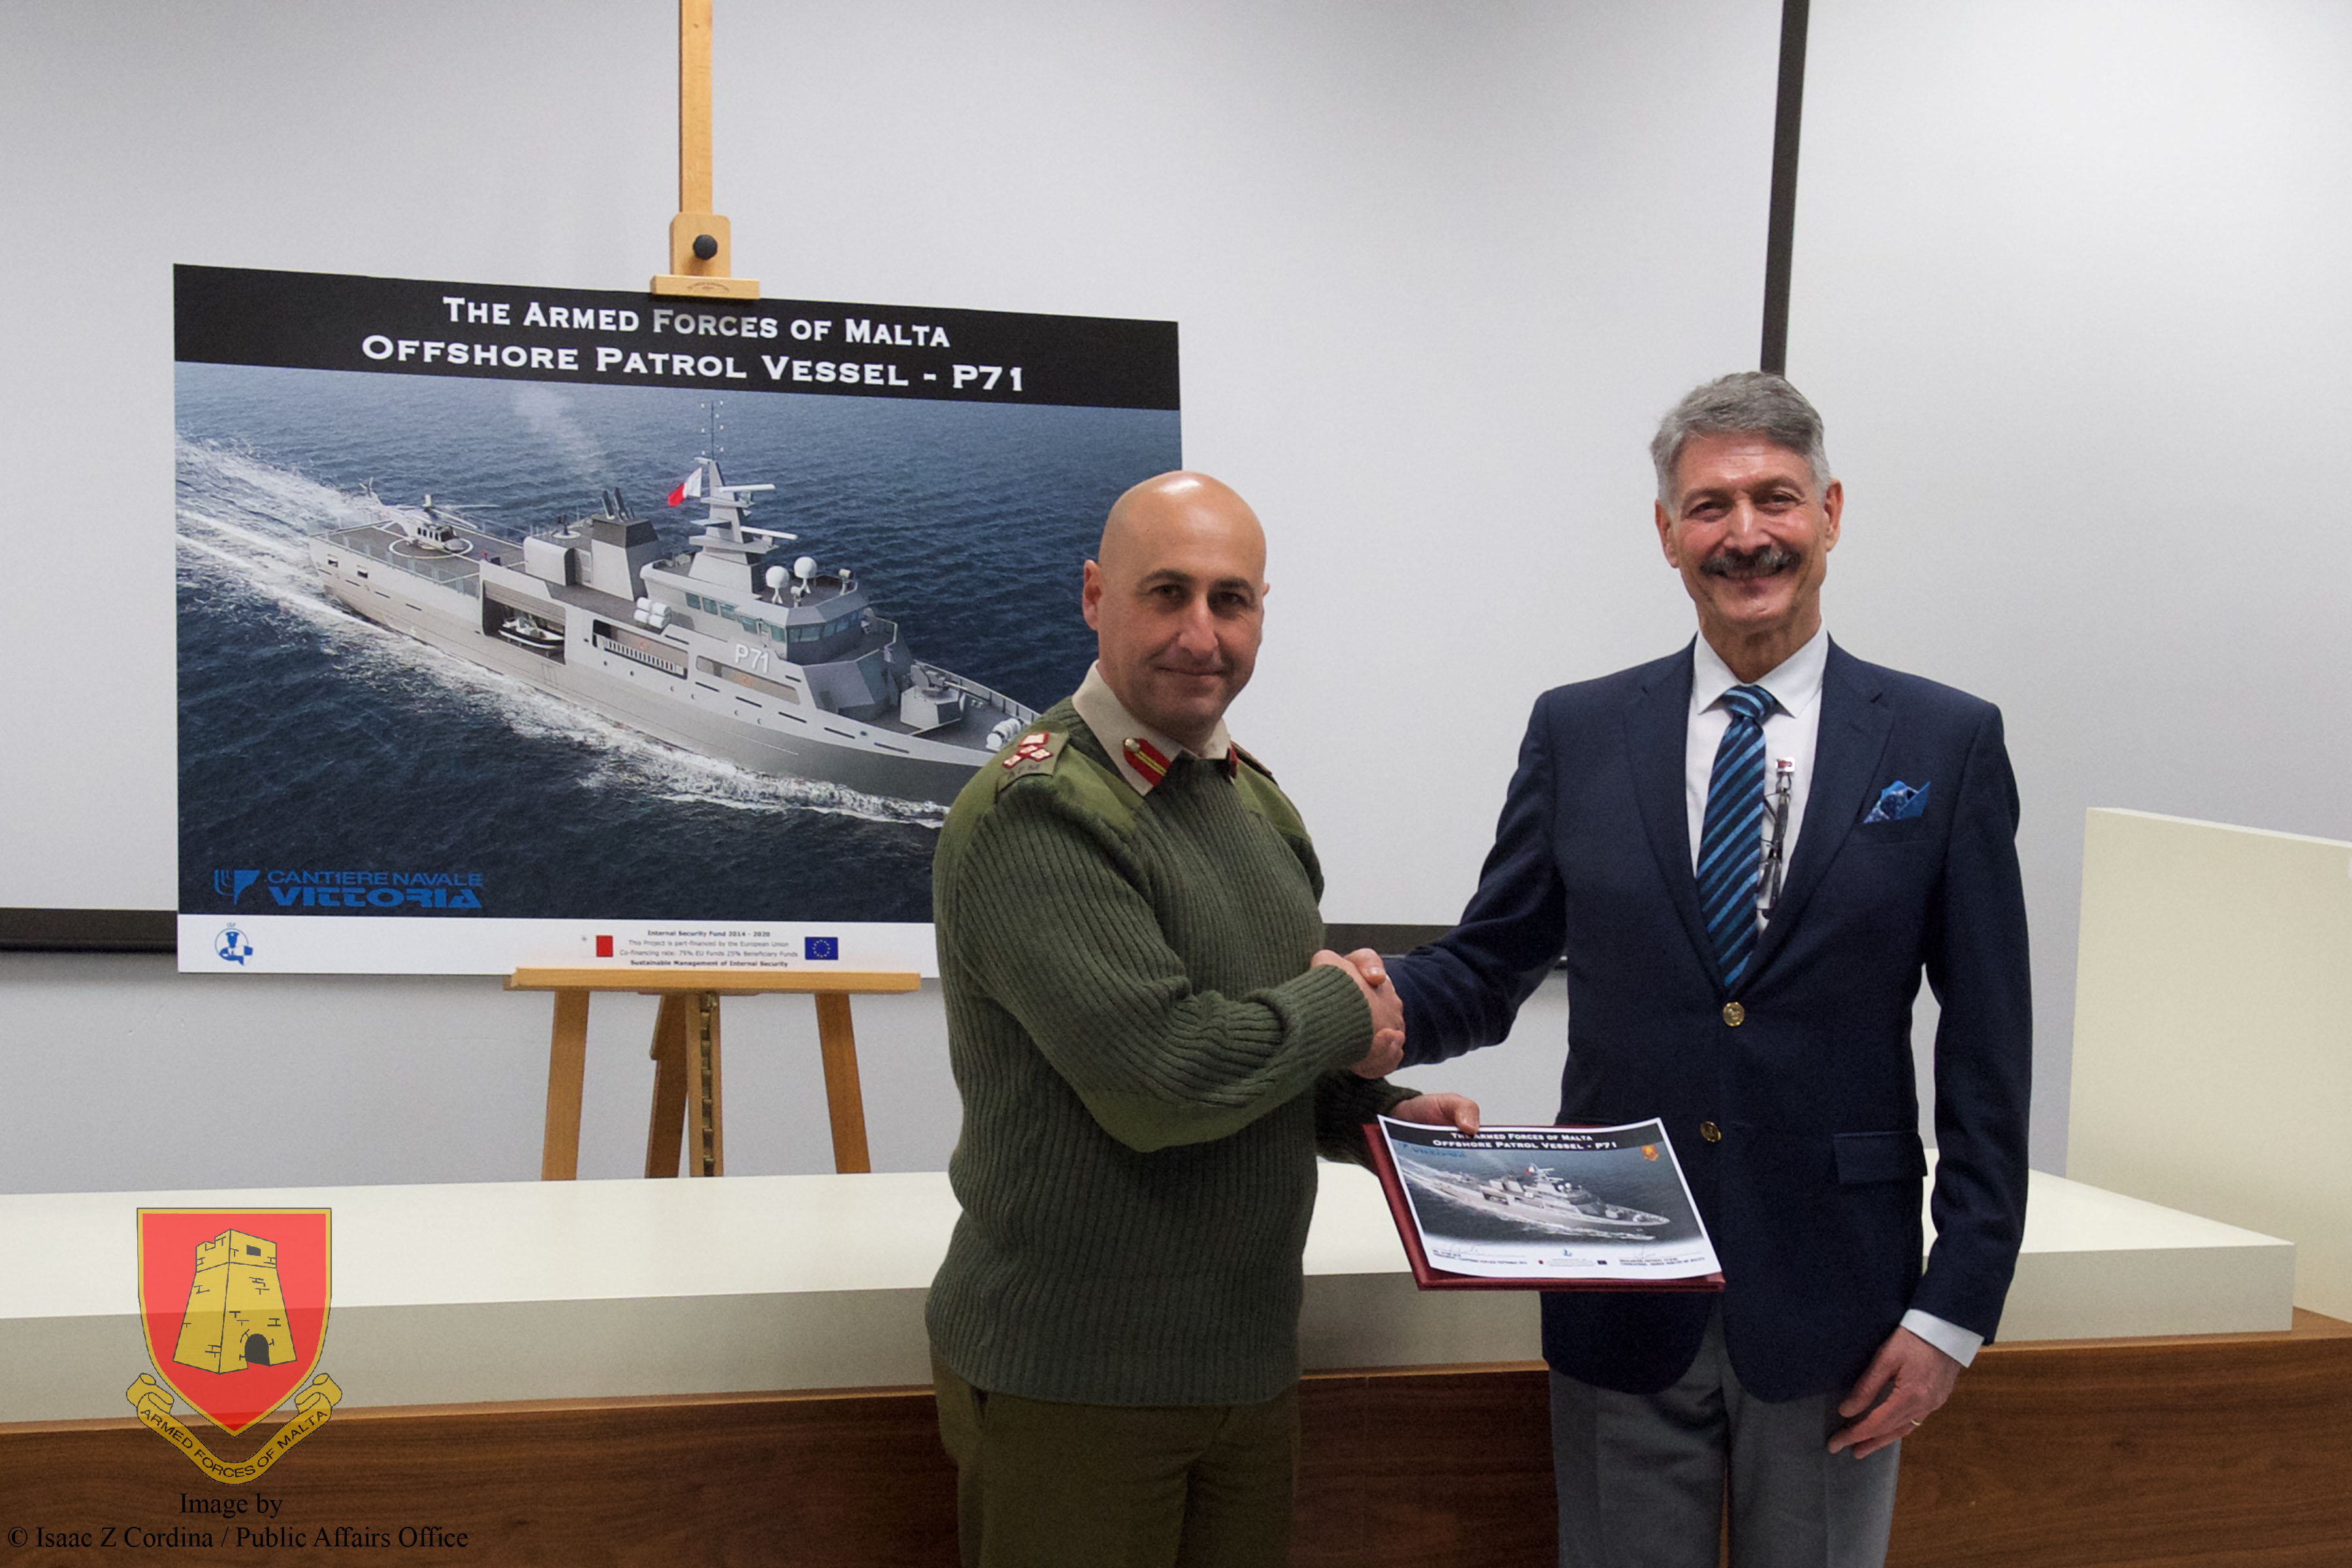 P71 Contract Signing 16-01-2019 - Image by I Zammit Cordina 7.jpg